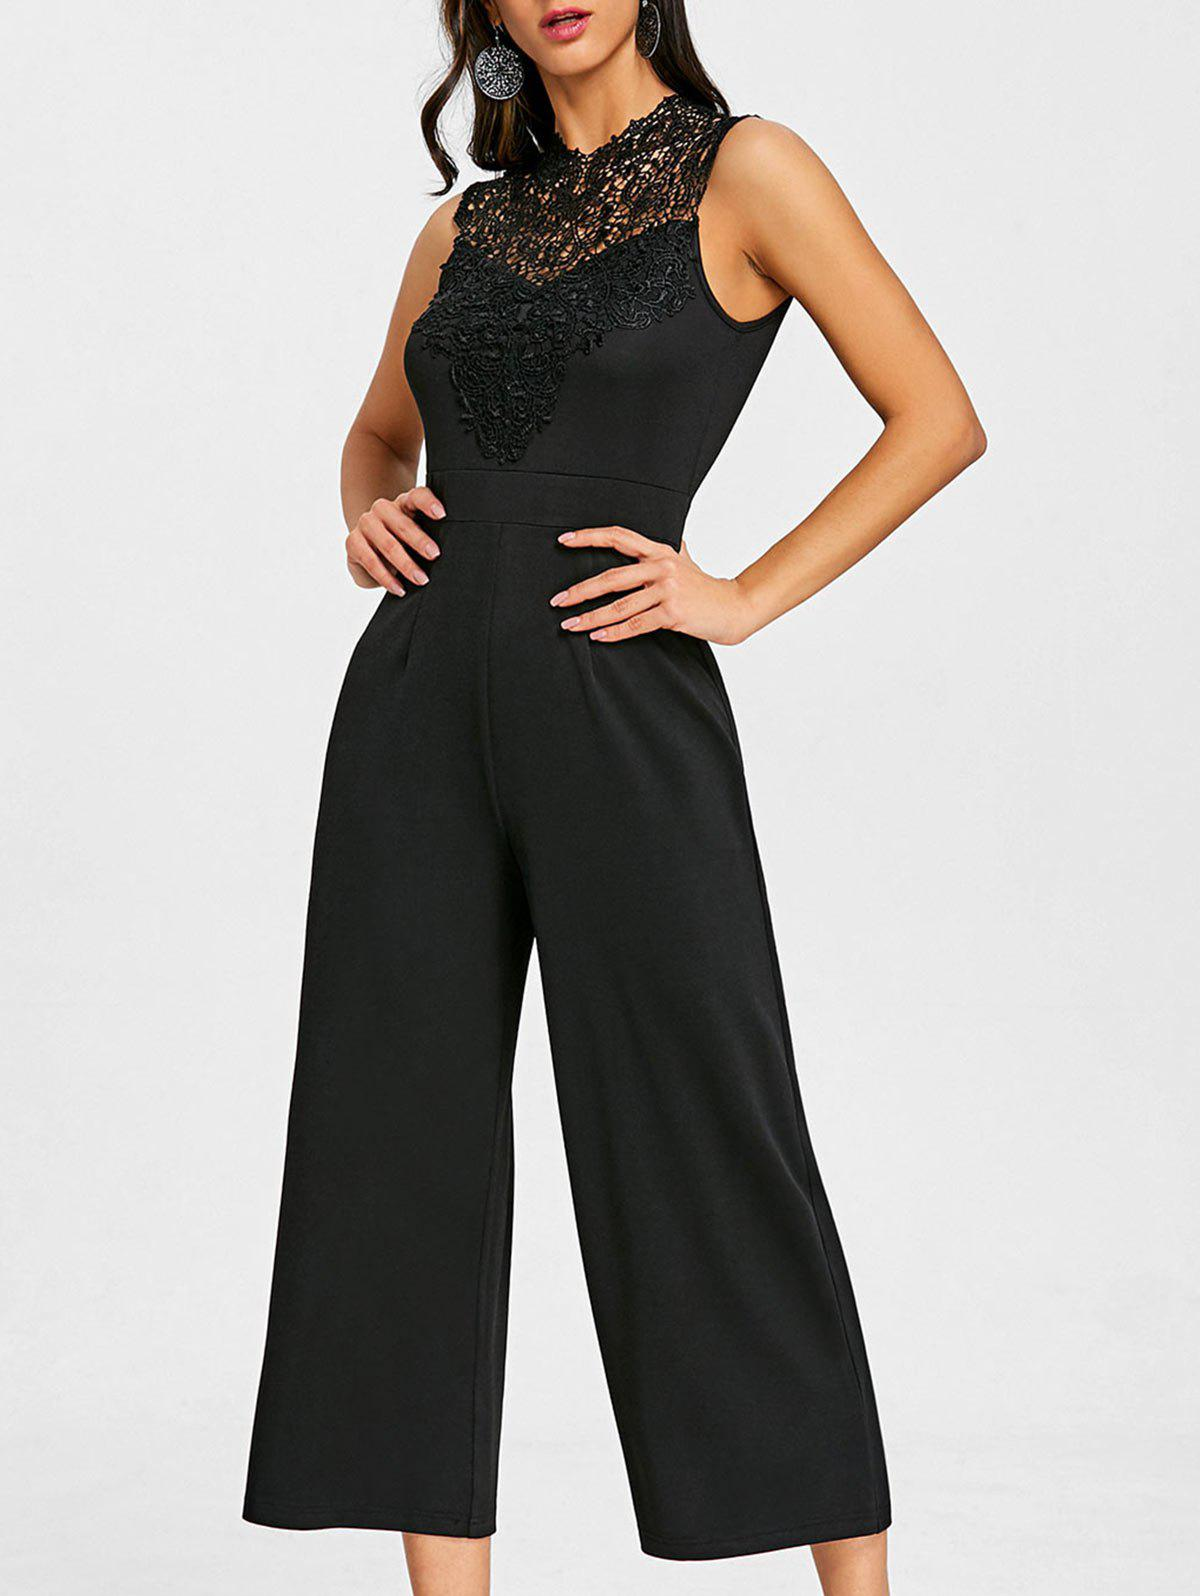 Lace Insert Sleeveless Culotte Jumpsuit - BLACK 2XL